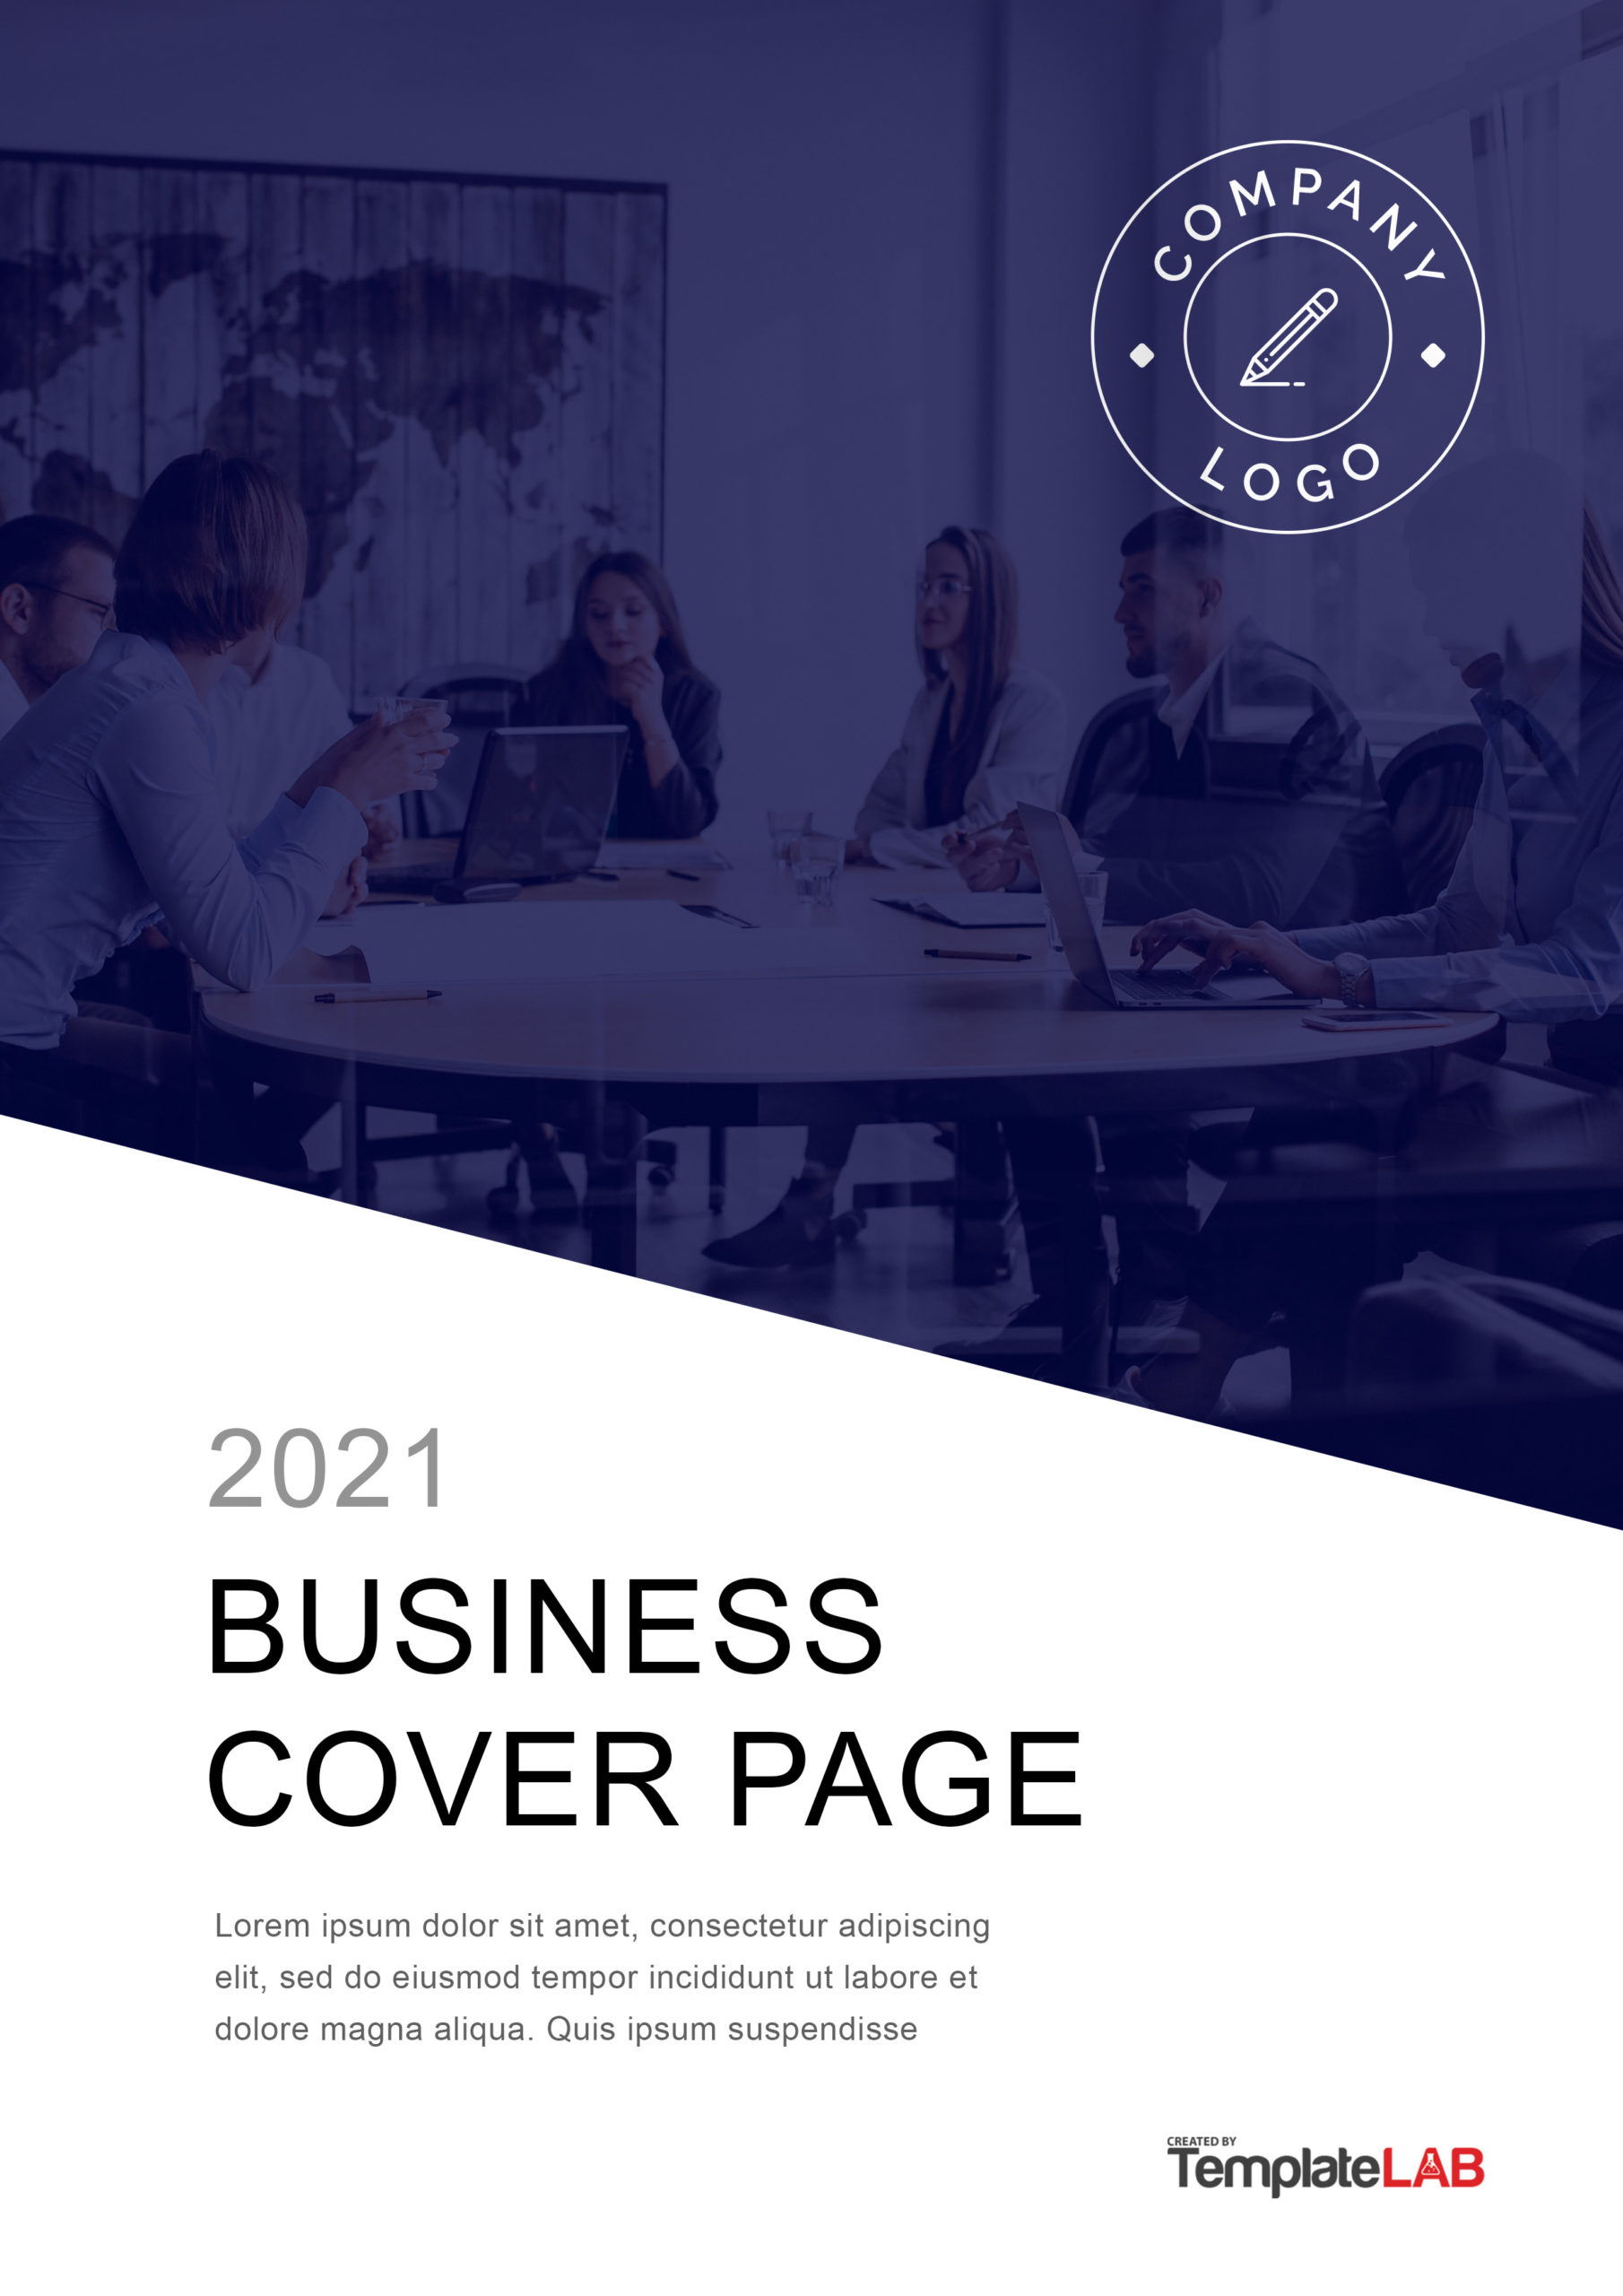 Free Business Cover Page template - TemplateLab.com